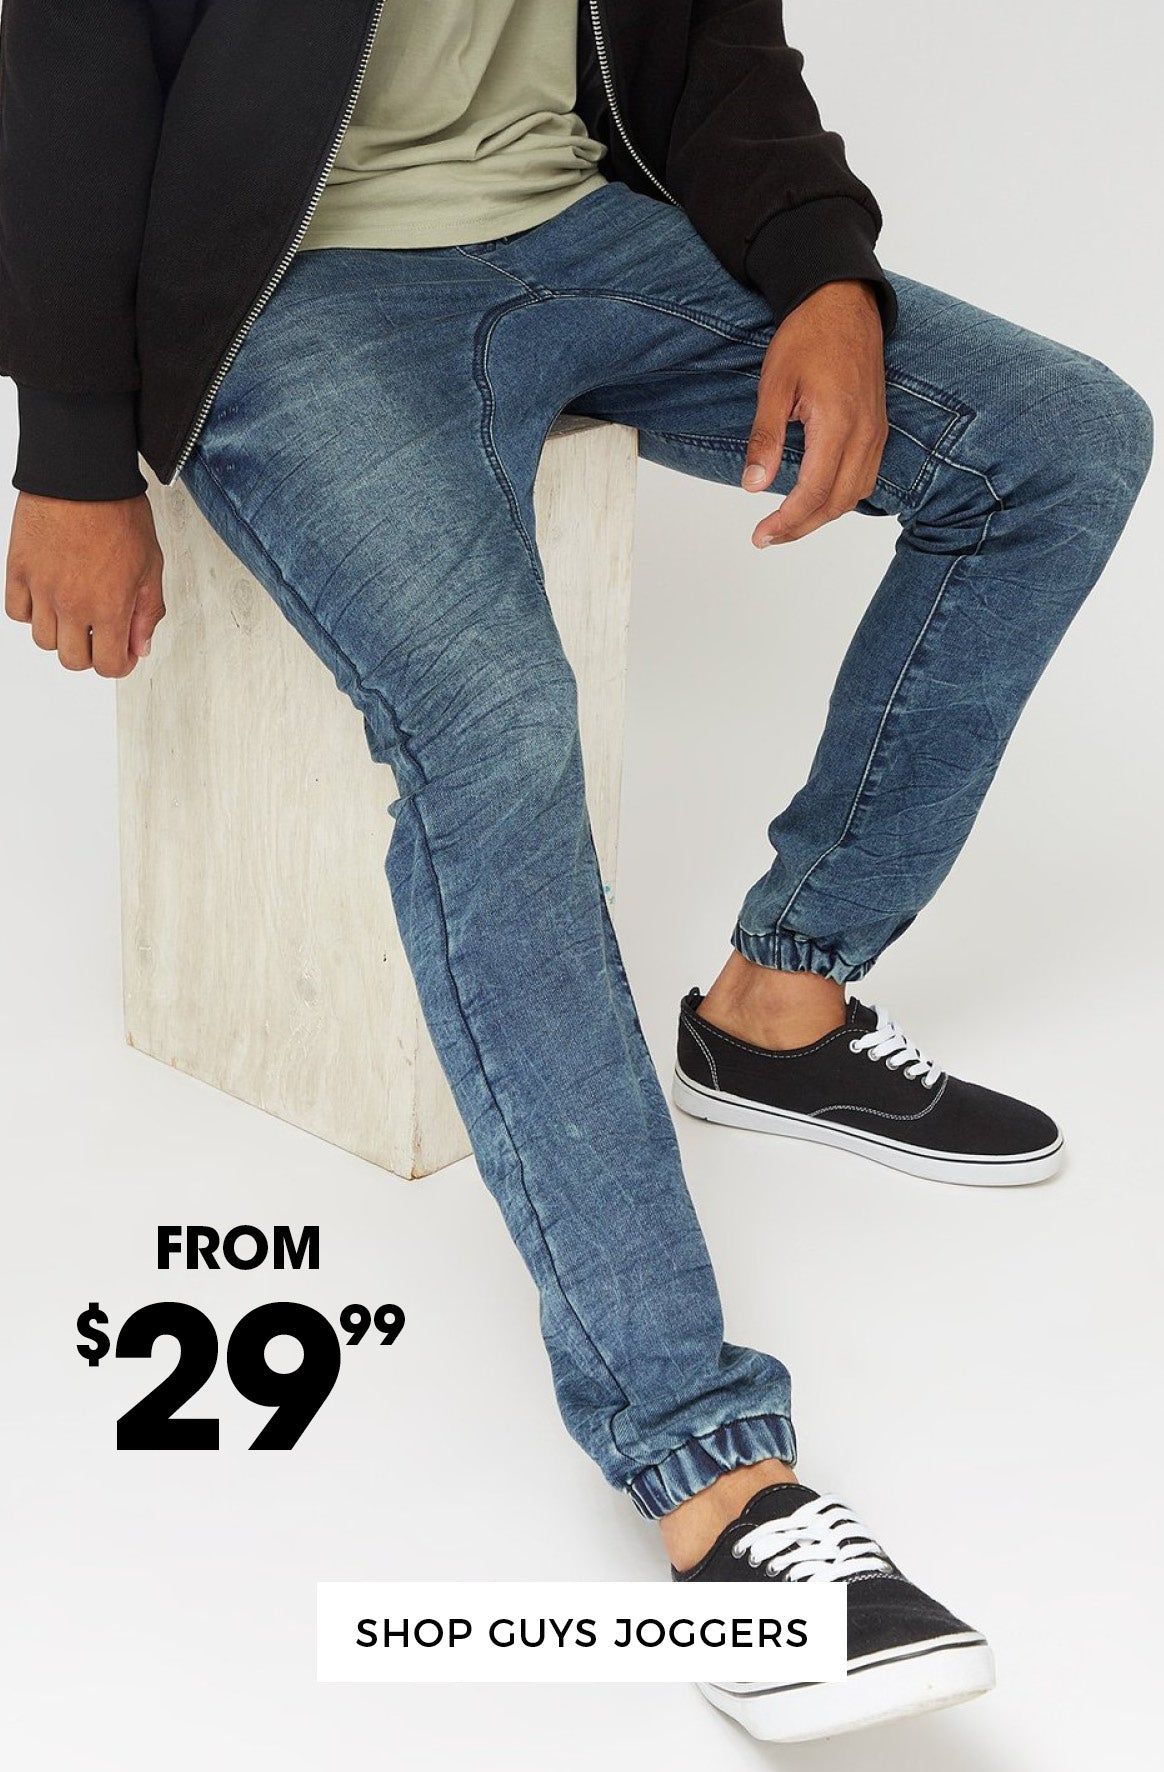 Joggers from $29.99 - Shop Guys Joggers